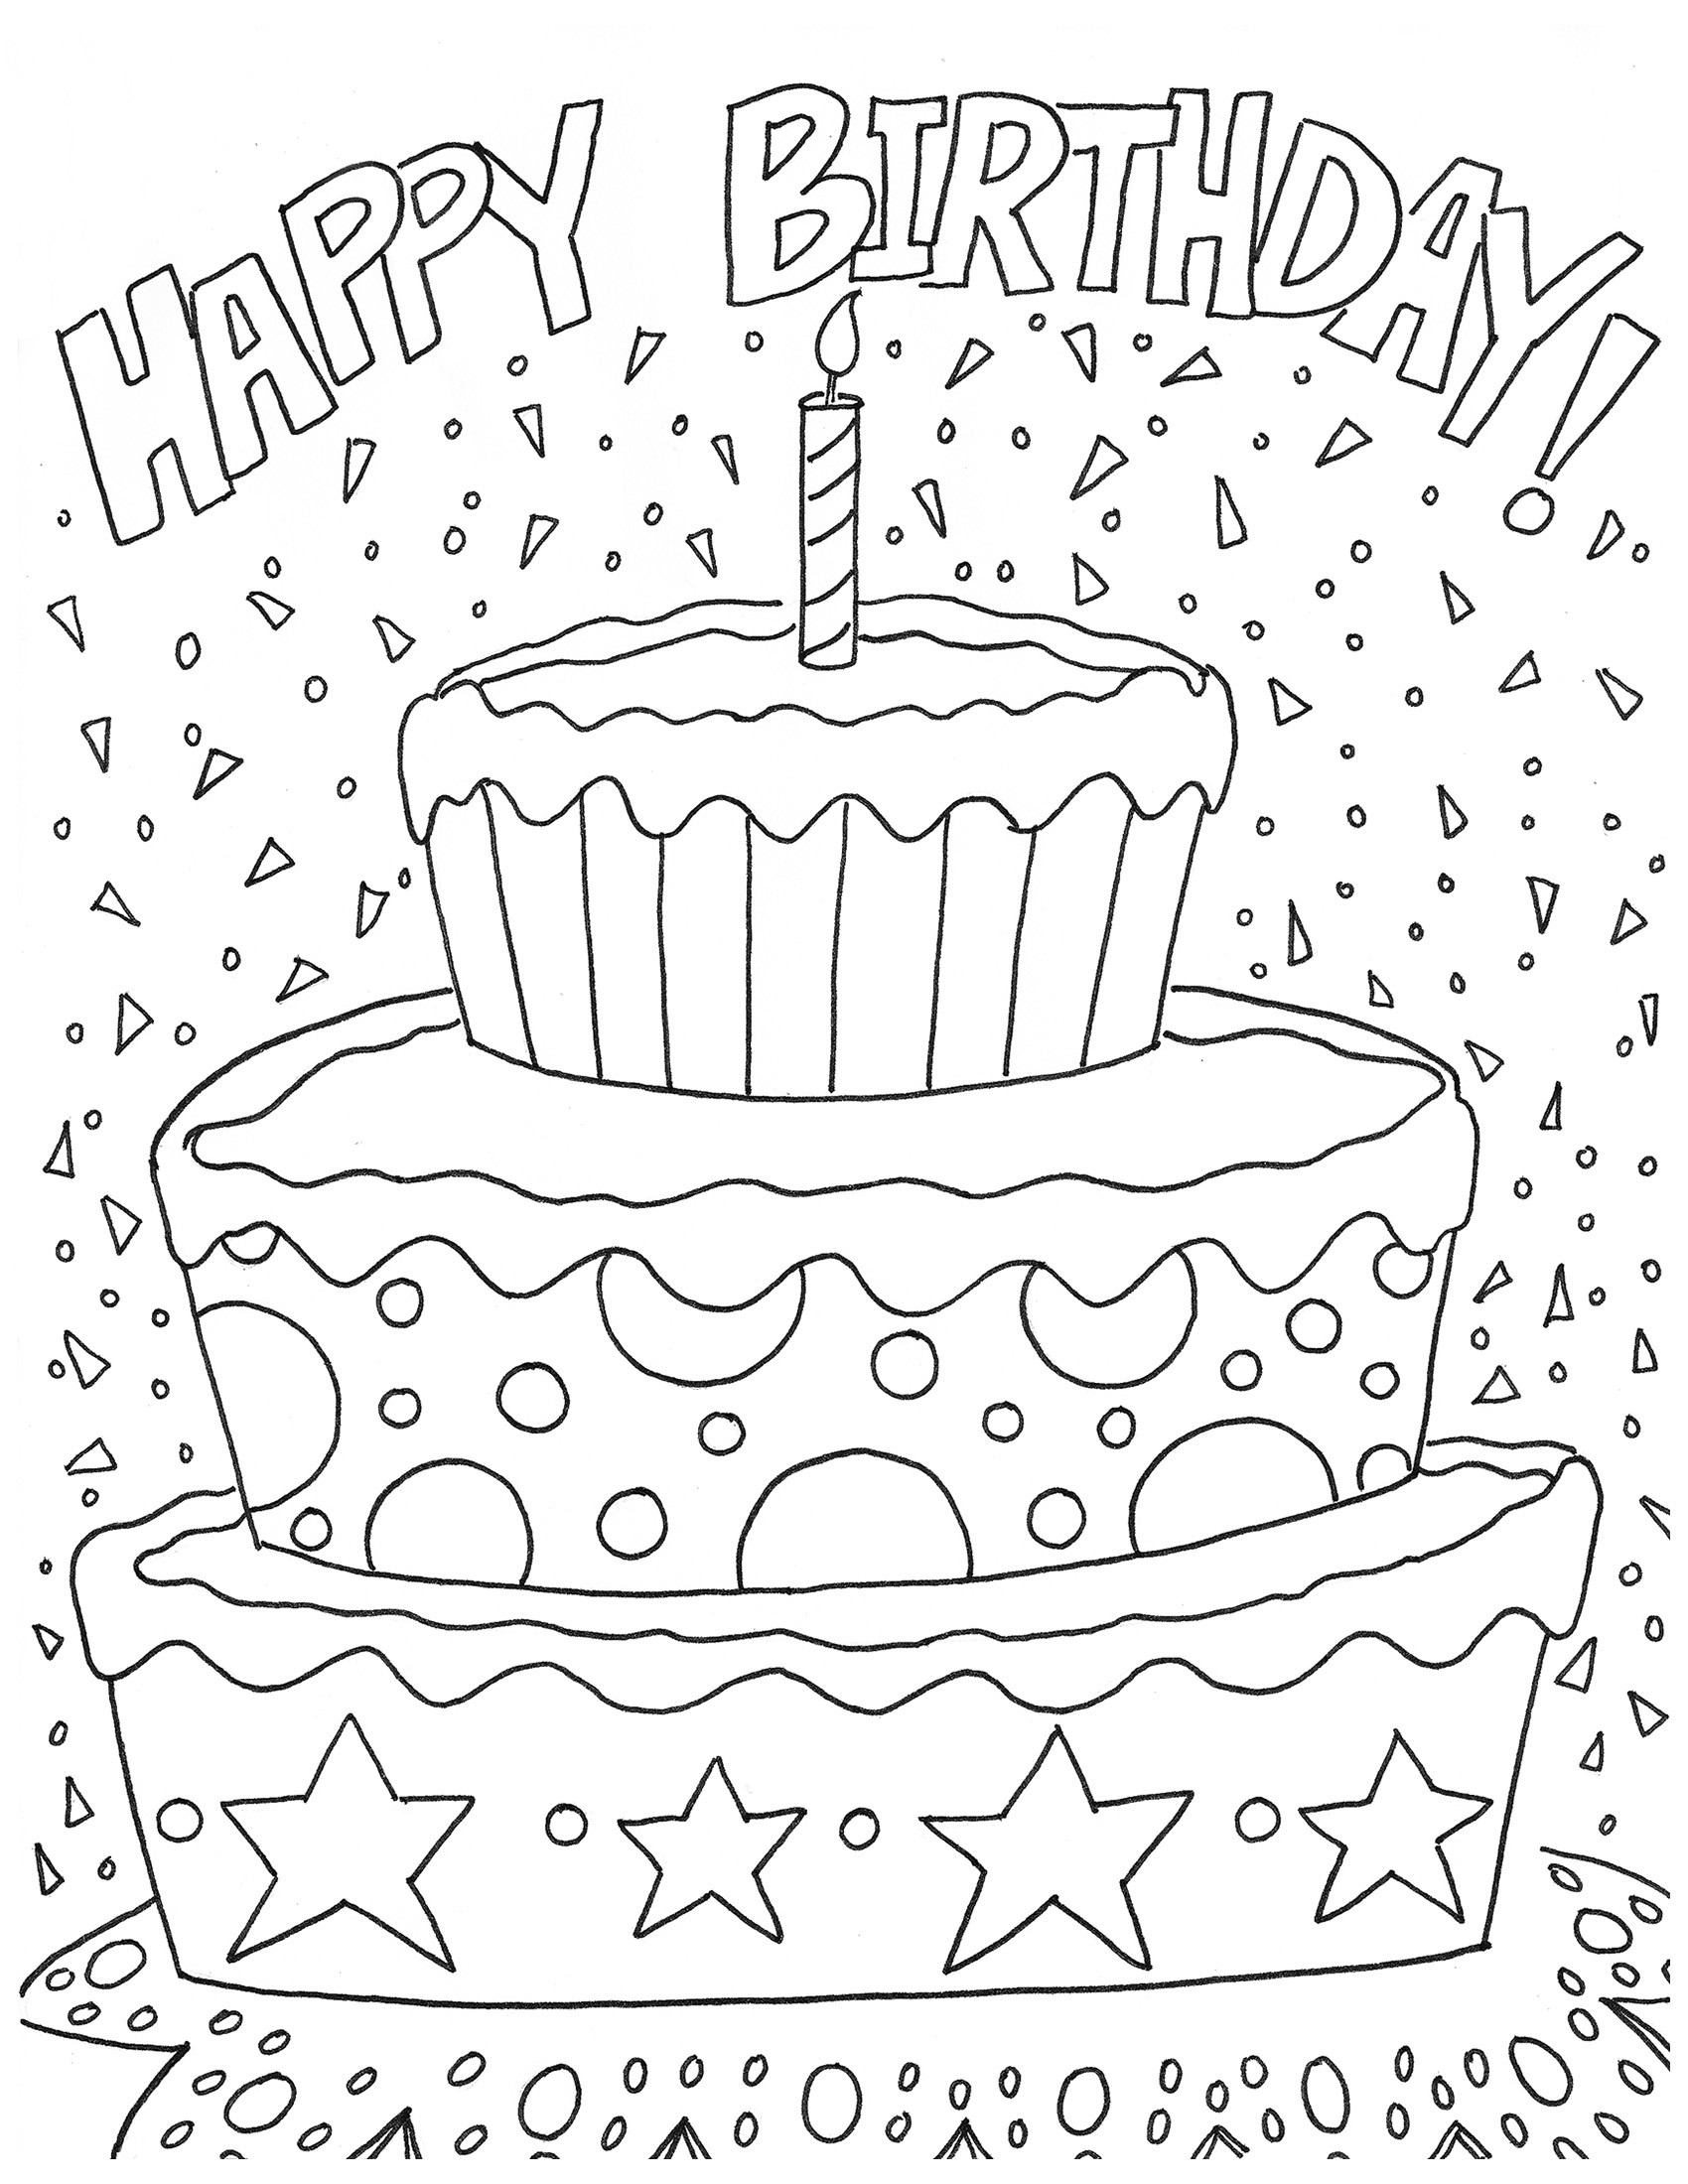 Best ideas about Coloring Sheets For Girls The Birthday Winipoo . Save or Pin Birthday Coloring Pages coloringsuite Now.